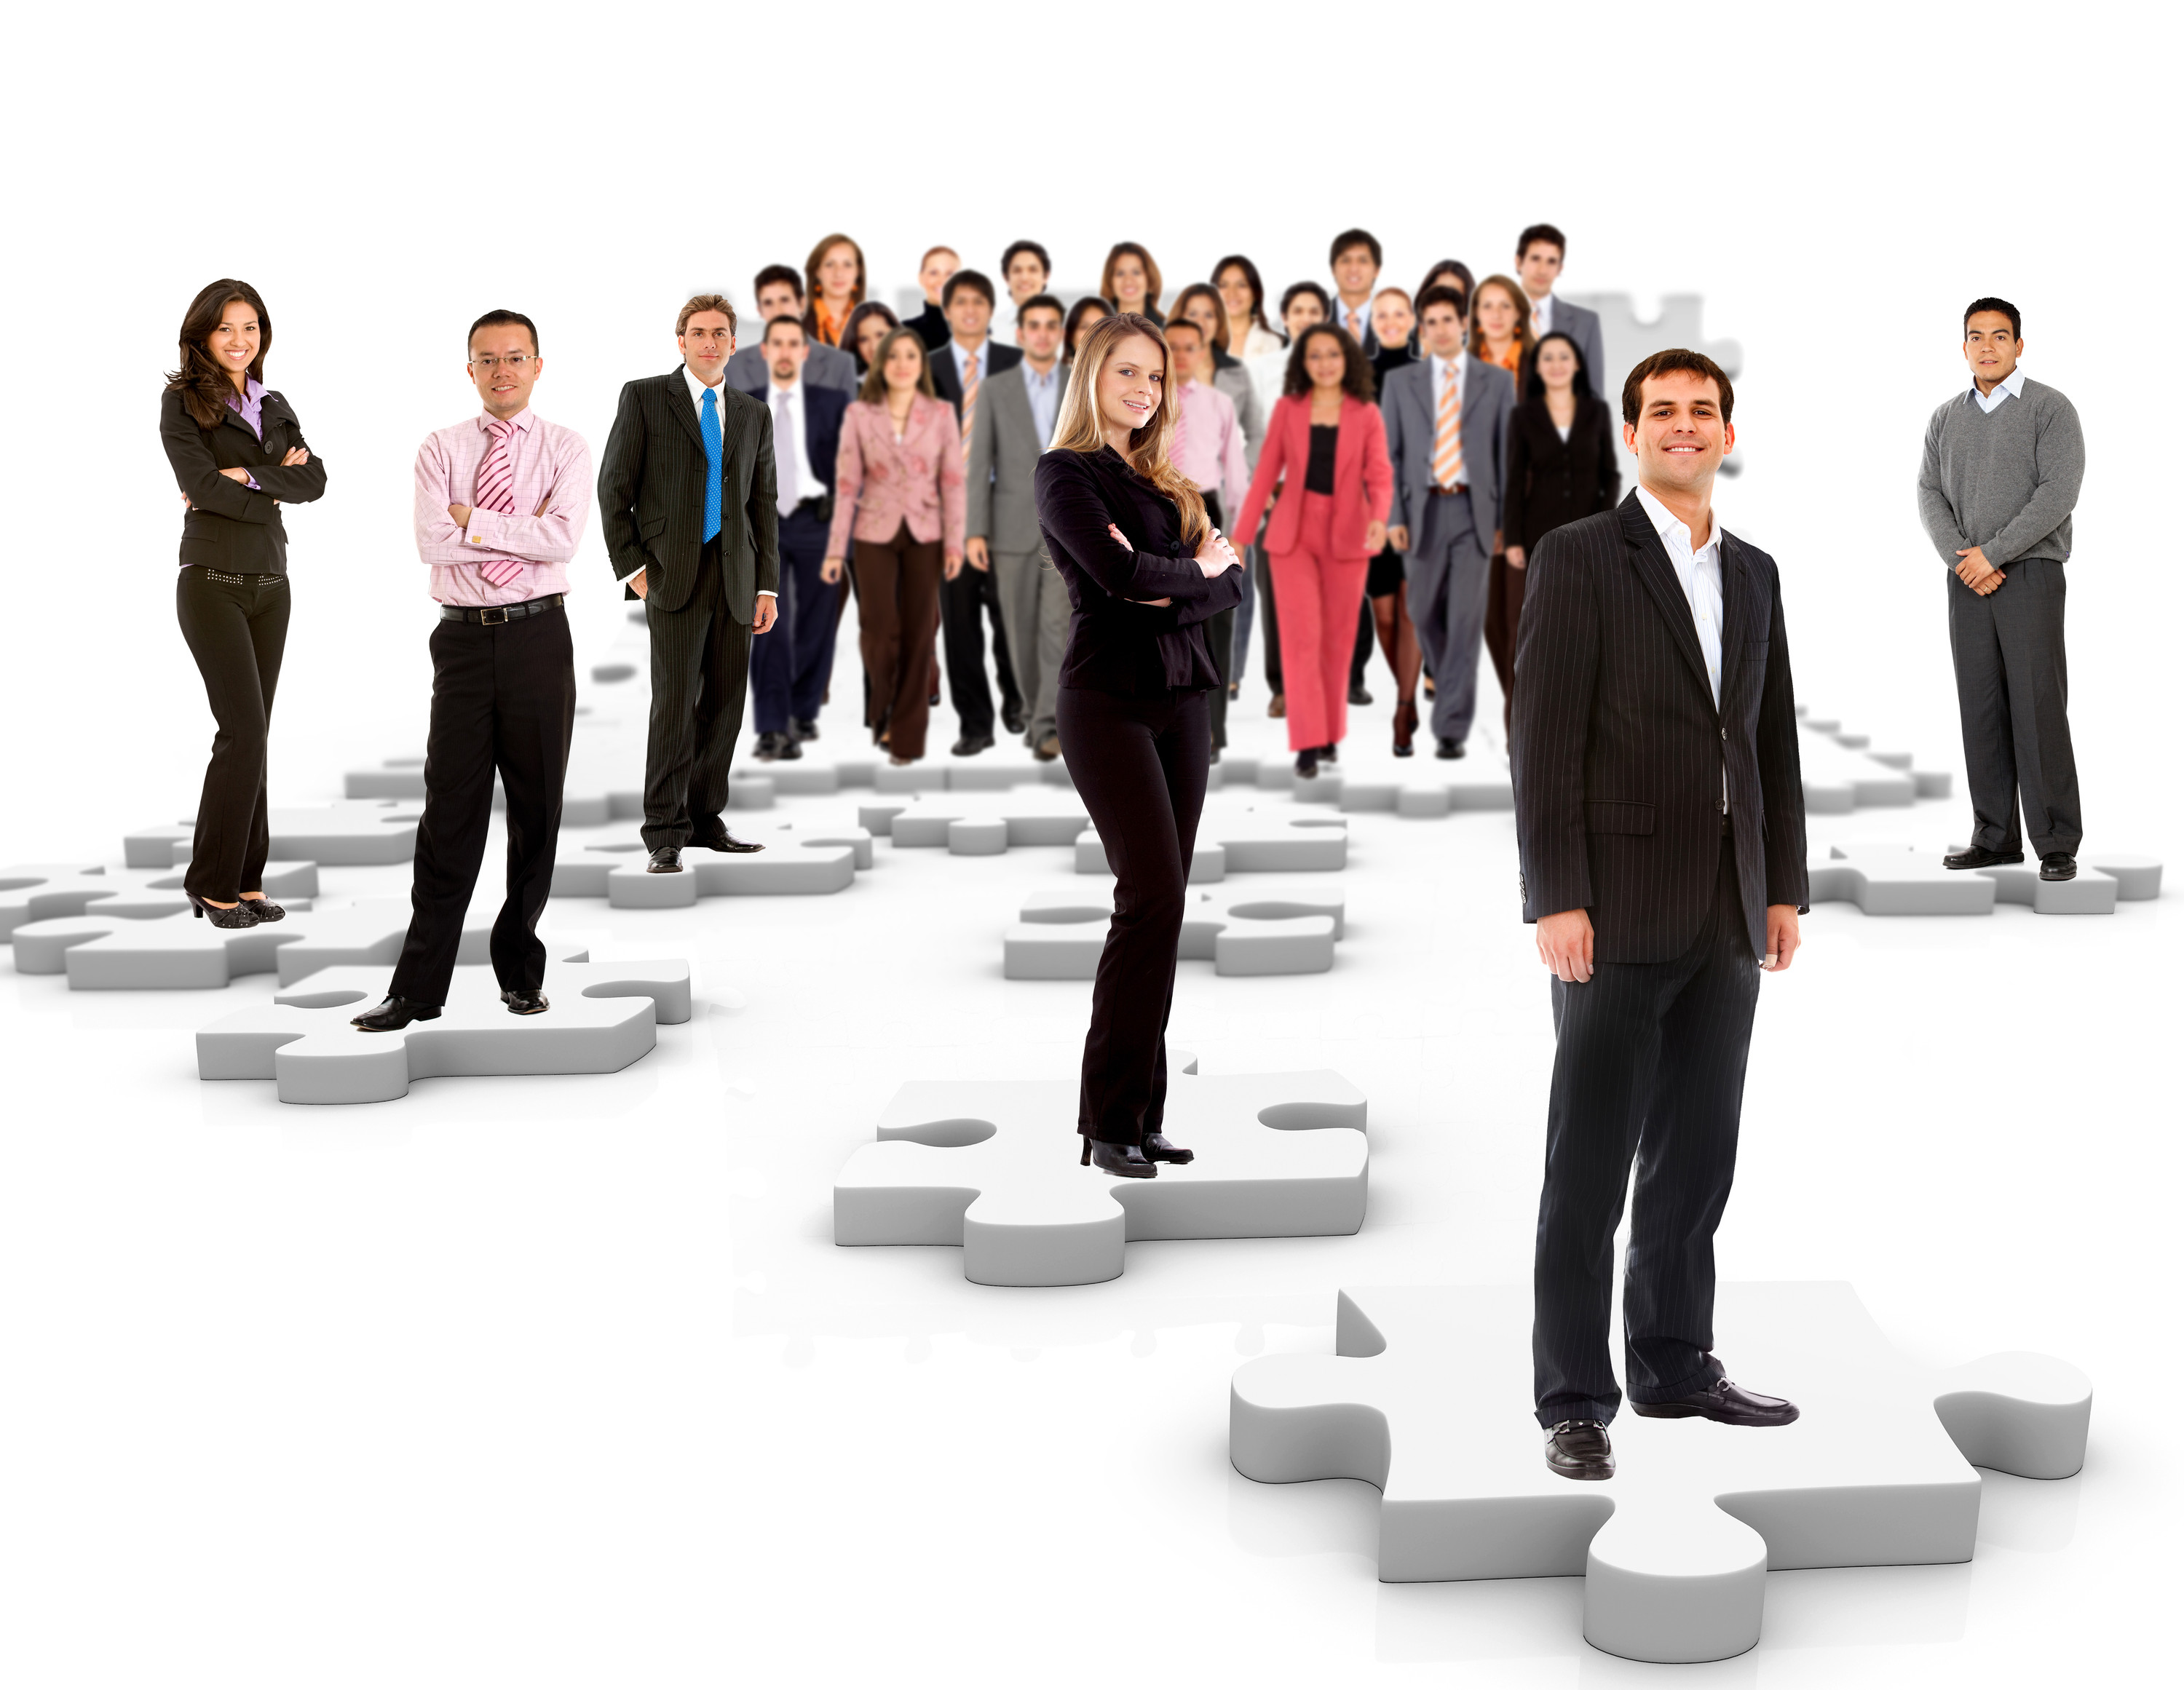 4 Good Reasons For Starting Your Own Network Marketing Business